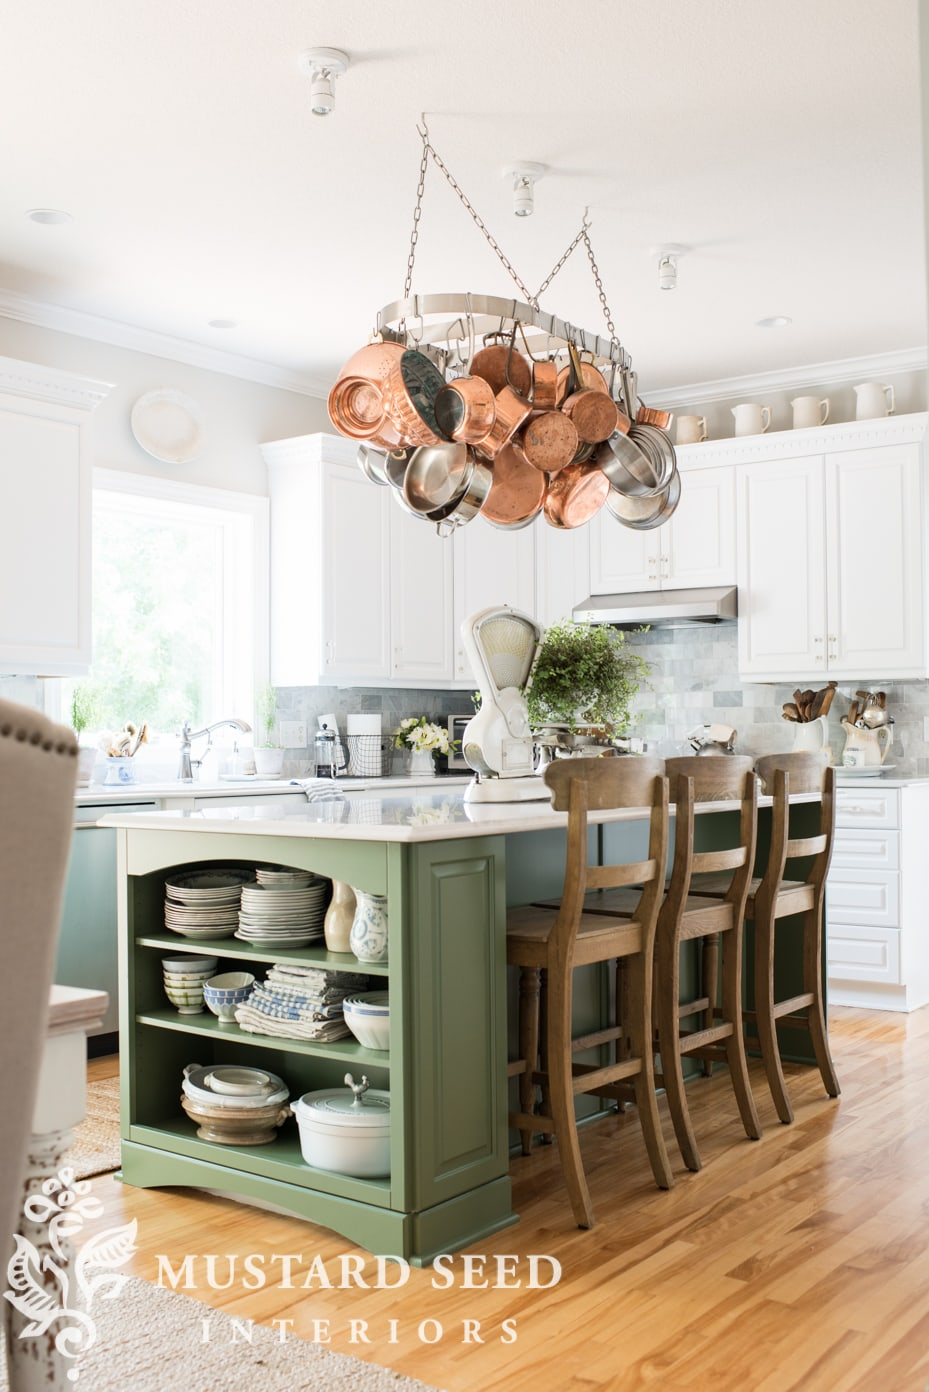 A farmhouse kitchen featuring a green island, white cabinets, and a pot rack with copper pots.